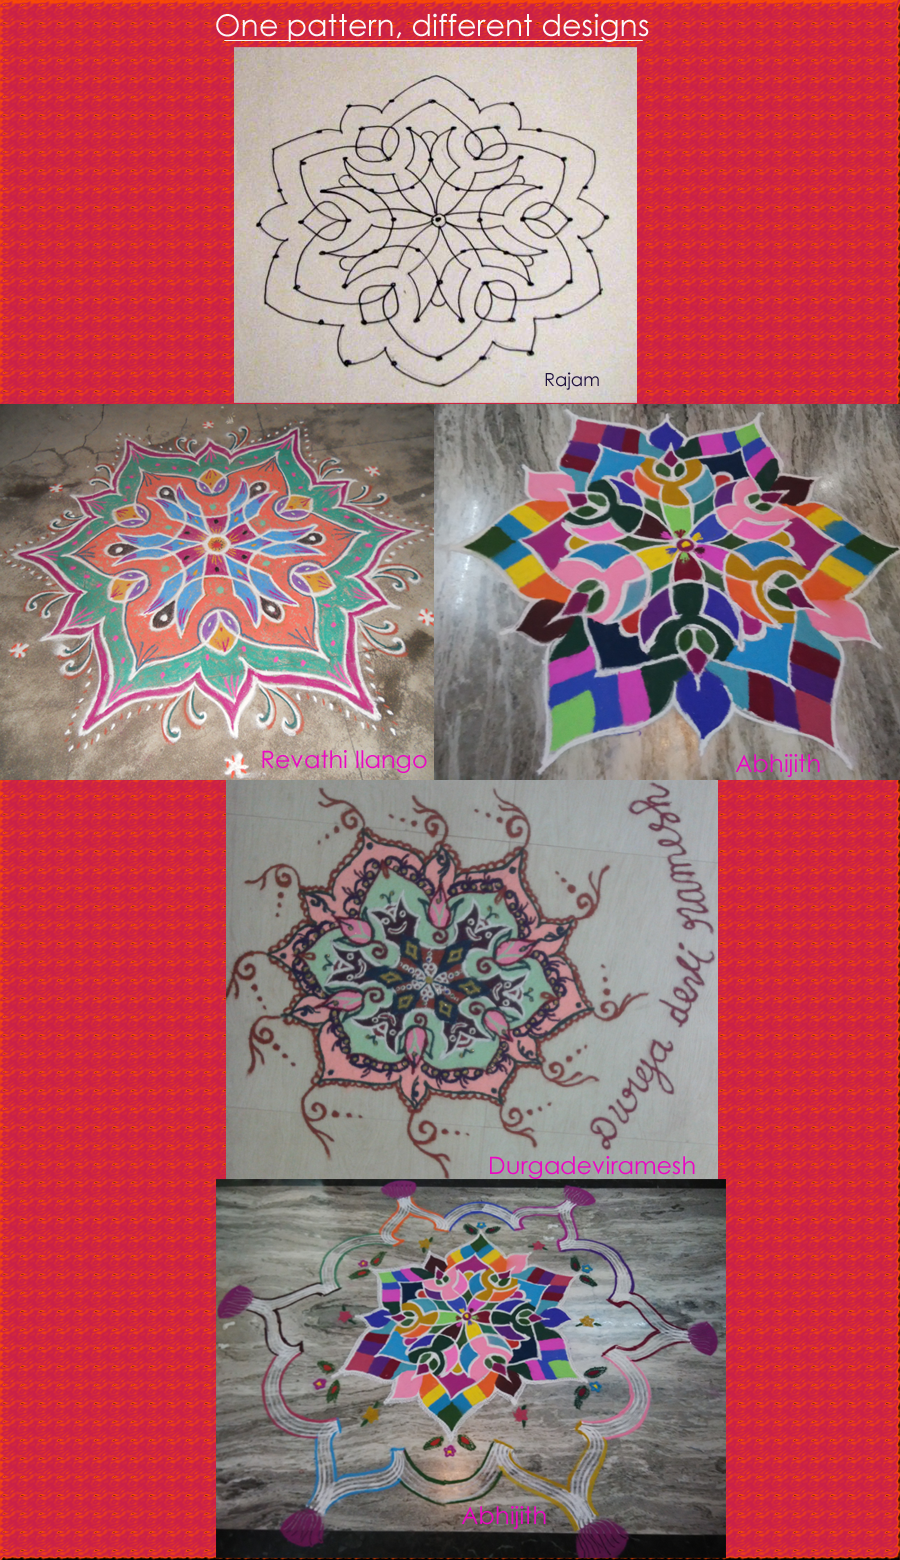 One pattern, different designs - rajam.png